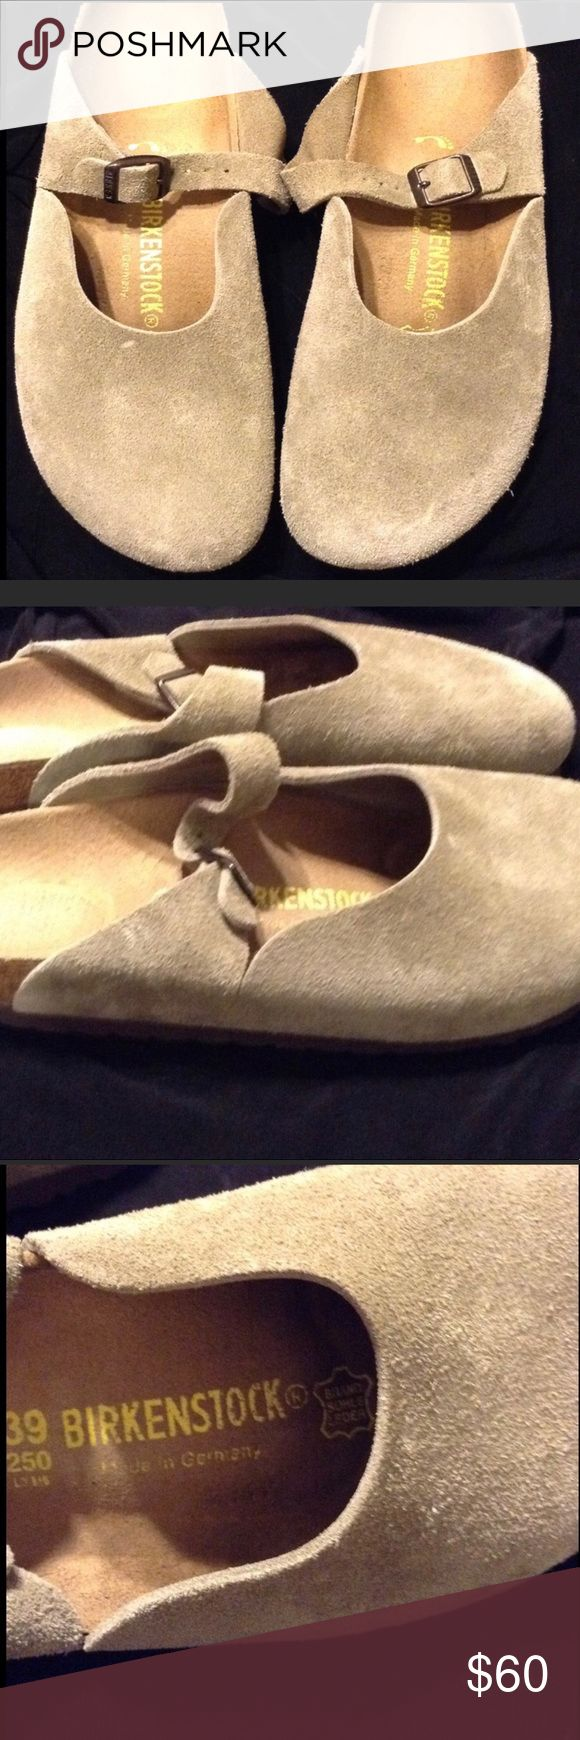 Birkenstock: Clog (Suede Taupe) A classic Birkenstock style made of soft taupe suede; Very healthy arch support; Stylish feminine buckle strap could be styled with leggings, pants or skirts! I cannot wear narrow Birkenstocks and haven't been able to wear them Birkenstock Shoes Mules & Clogs